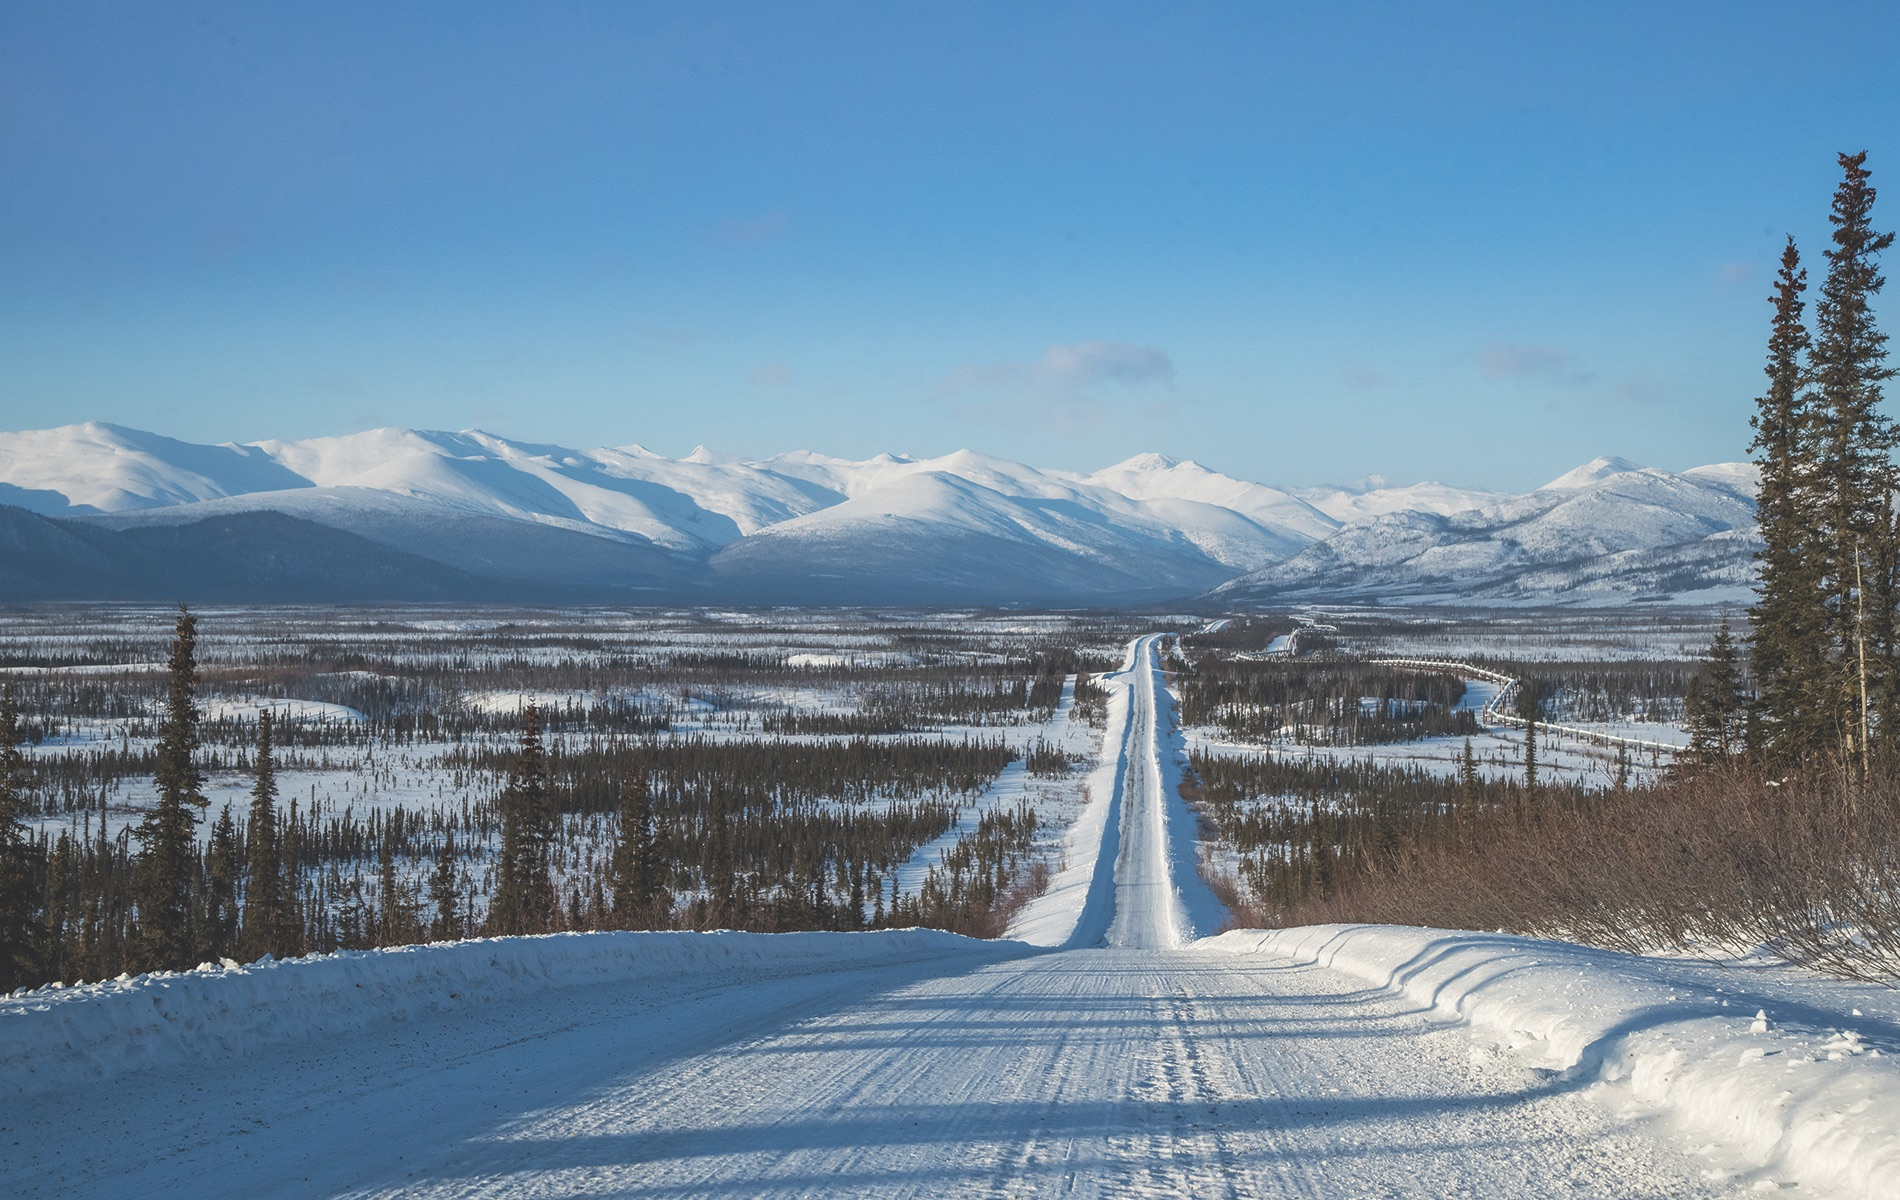 Vie magazine - the Dalton Highway in the Arctic Circle.